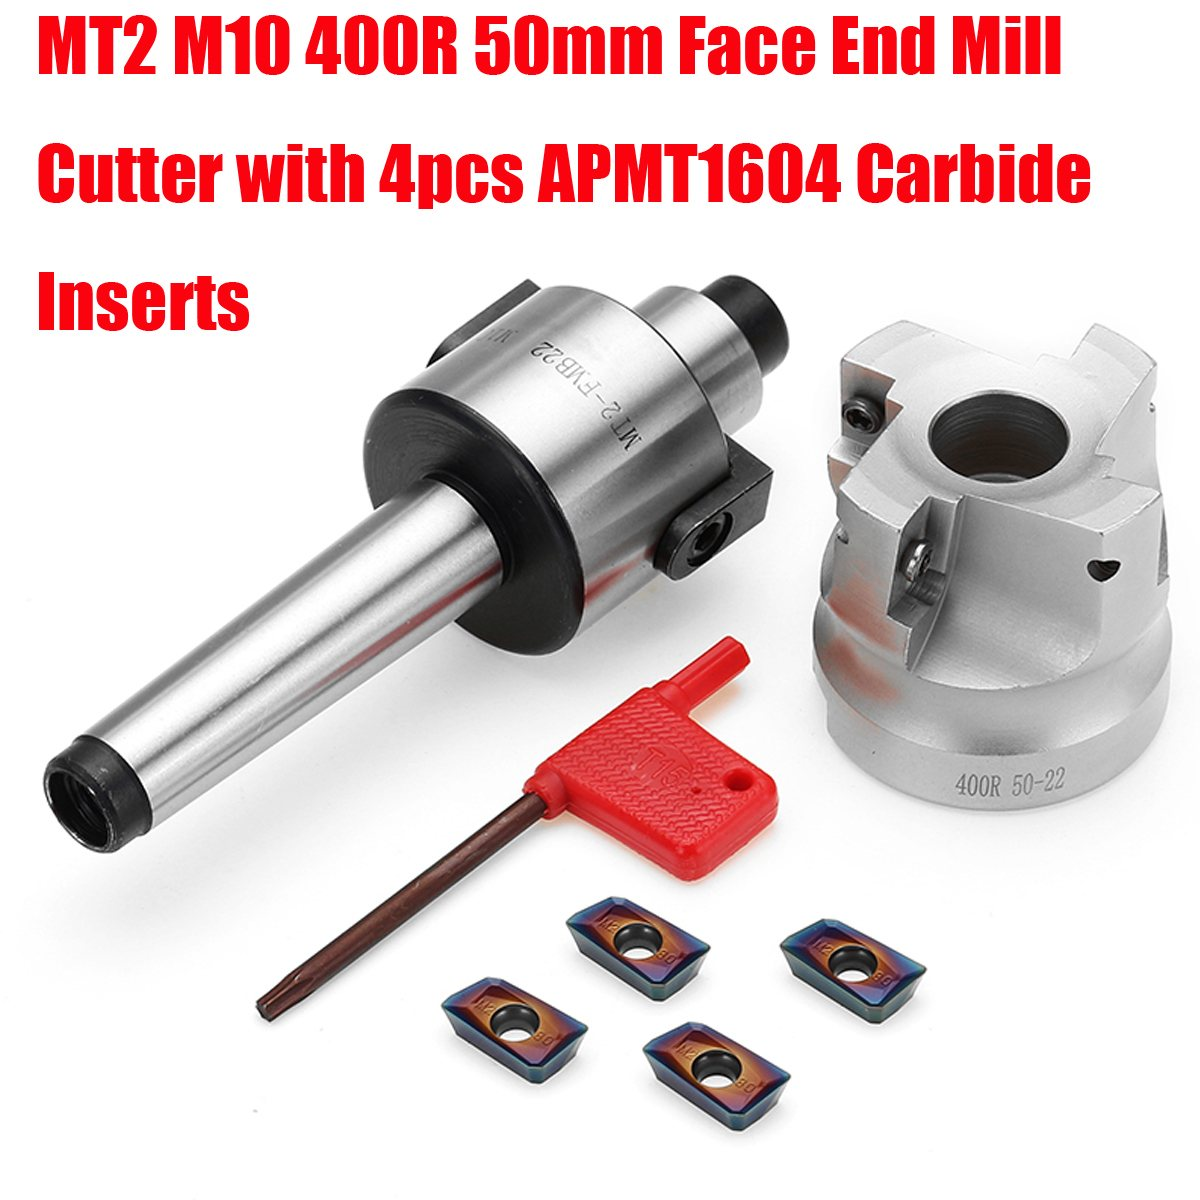 MT2 M10 50mm Face End Mill Cutter with 10pcs APMT1604 Carbide Inserts